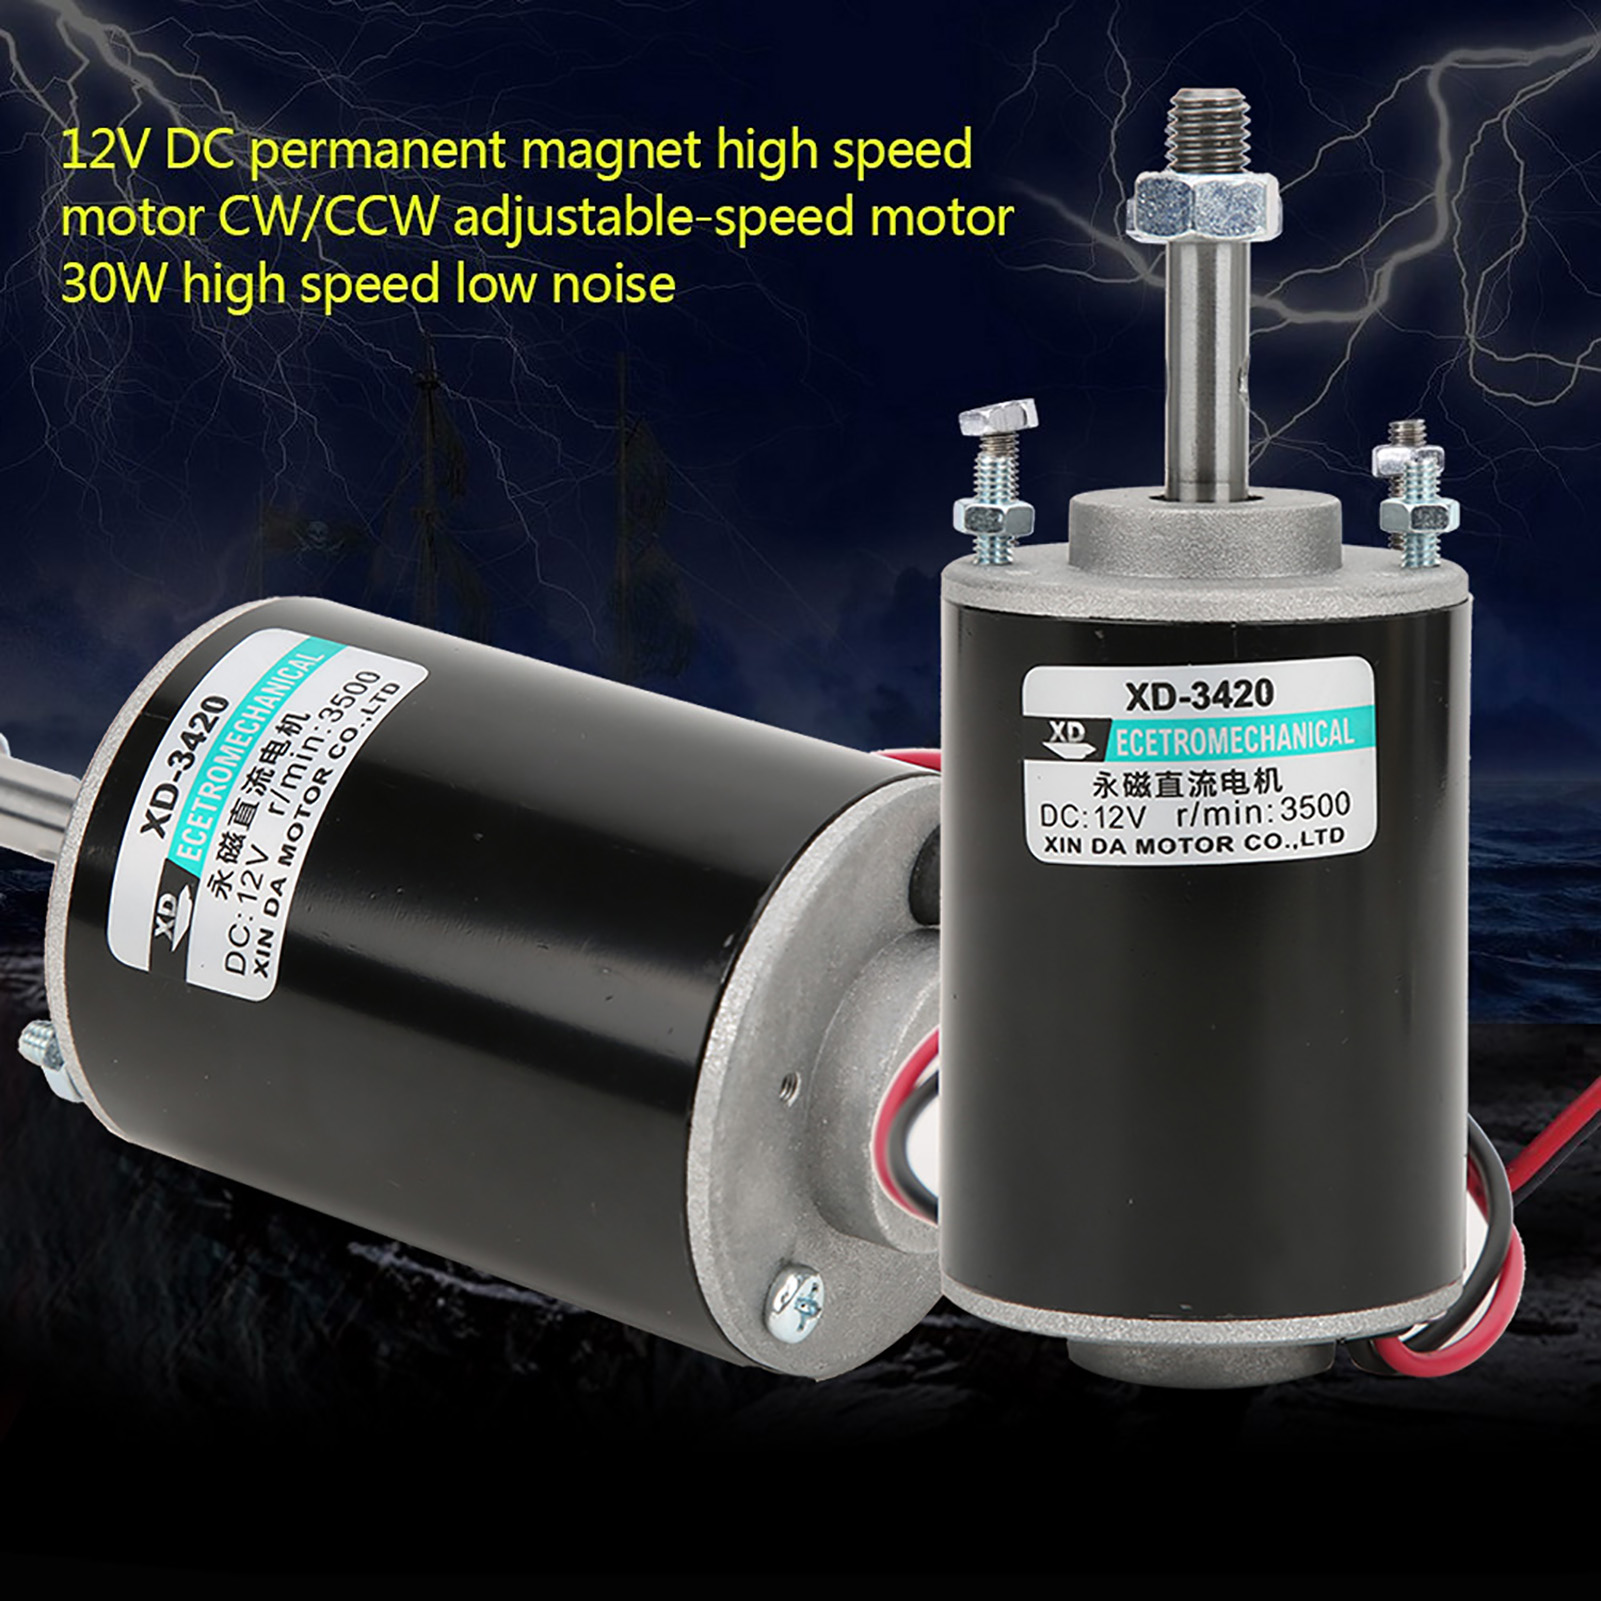 XD-3420 12//24V 30W Permanent Magnet High Speed DC Motor CW//CCW for Generator GL